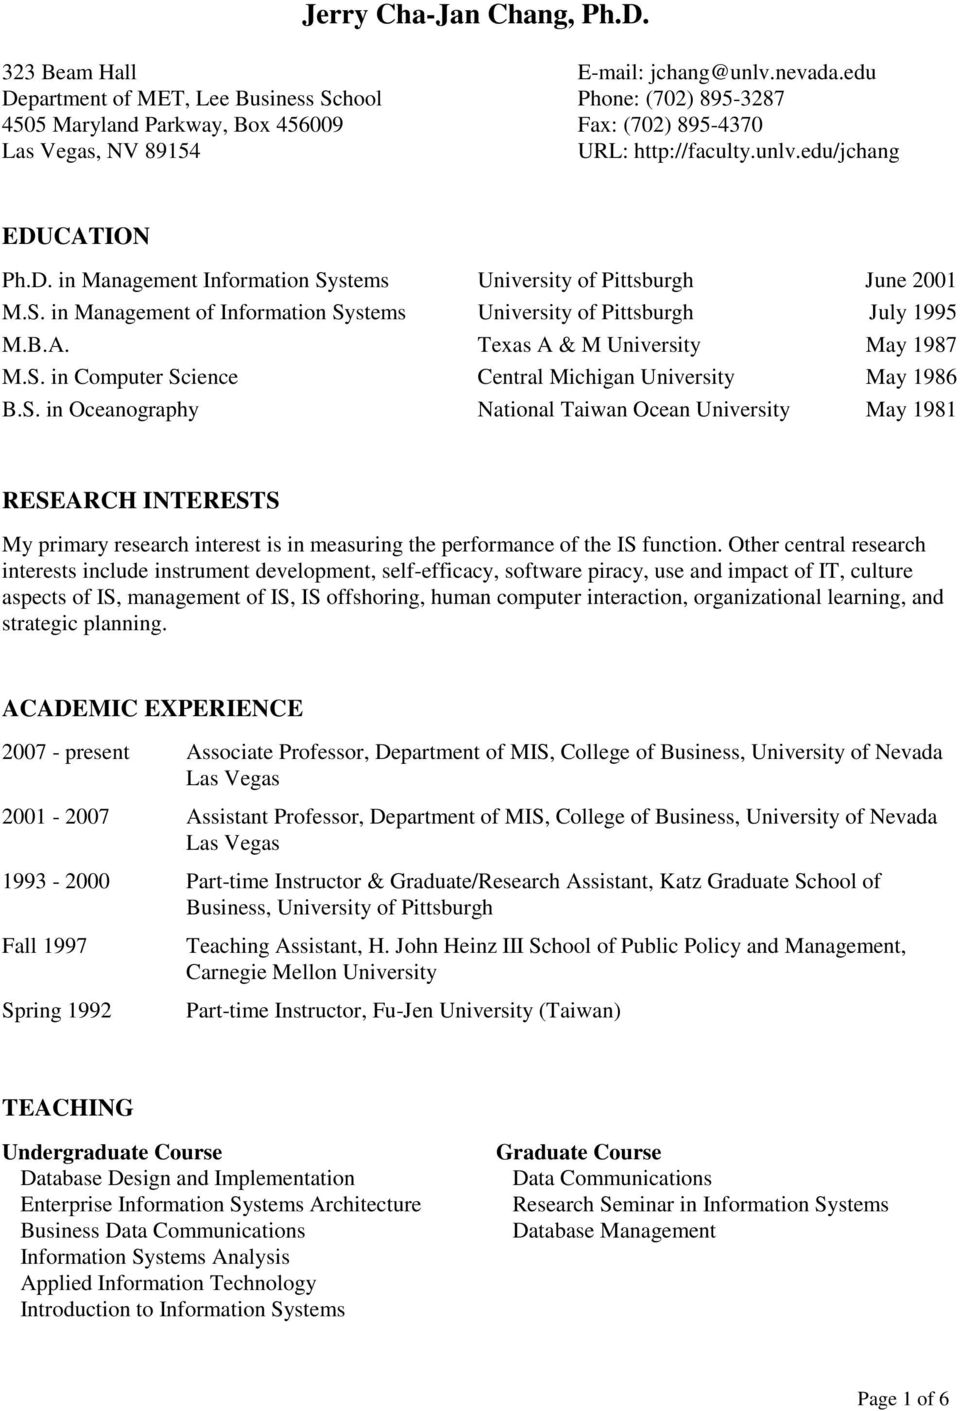 S. in Management of Information Systems University of Pittsburgh July 1995 M.B.A. Texas A & M University May 1987 M.S. in Computer Science Central Michigan University May 1986 B.S. in Oceanography National Taiwan Ocean University May 1981 RESEARCH INTERESTS My primary research interest is in measuring the performance of the IS function.